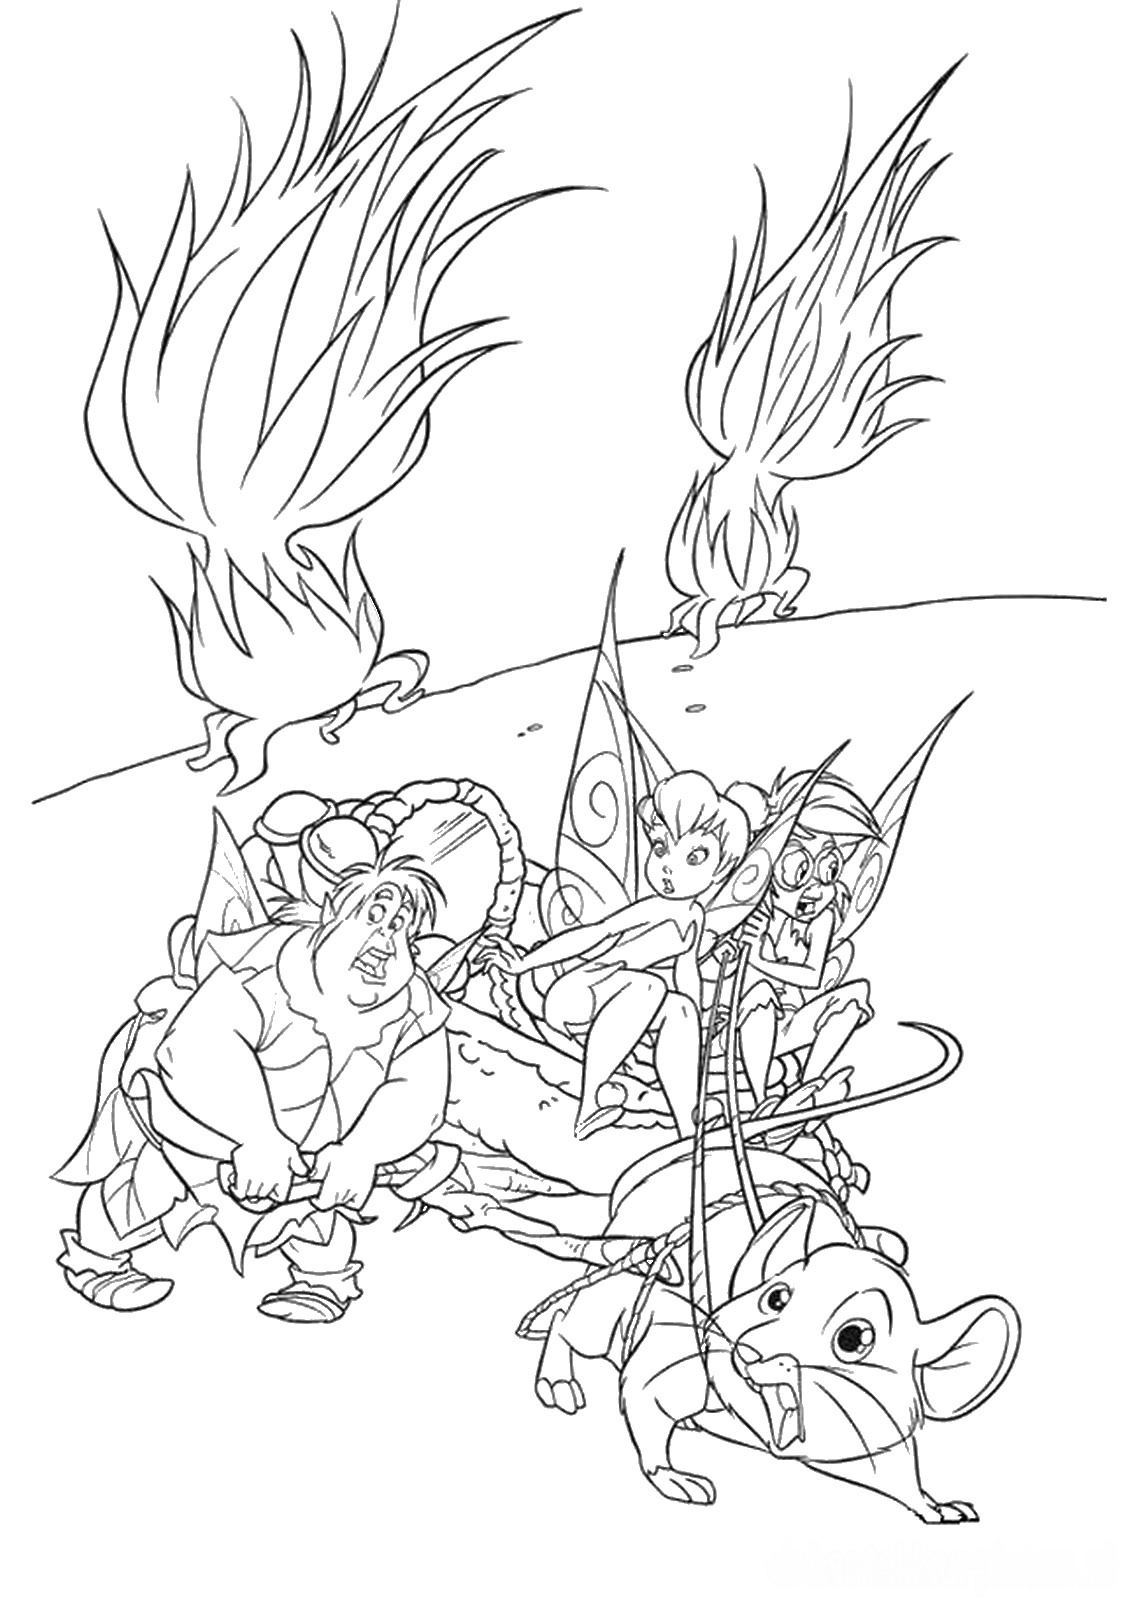 tinkerbell coloring pages free printable get this tinkerbell fairy coloring pages to print out for tinkerbell pages printable free coloring